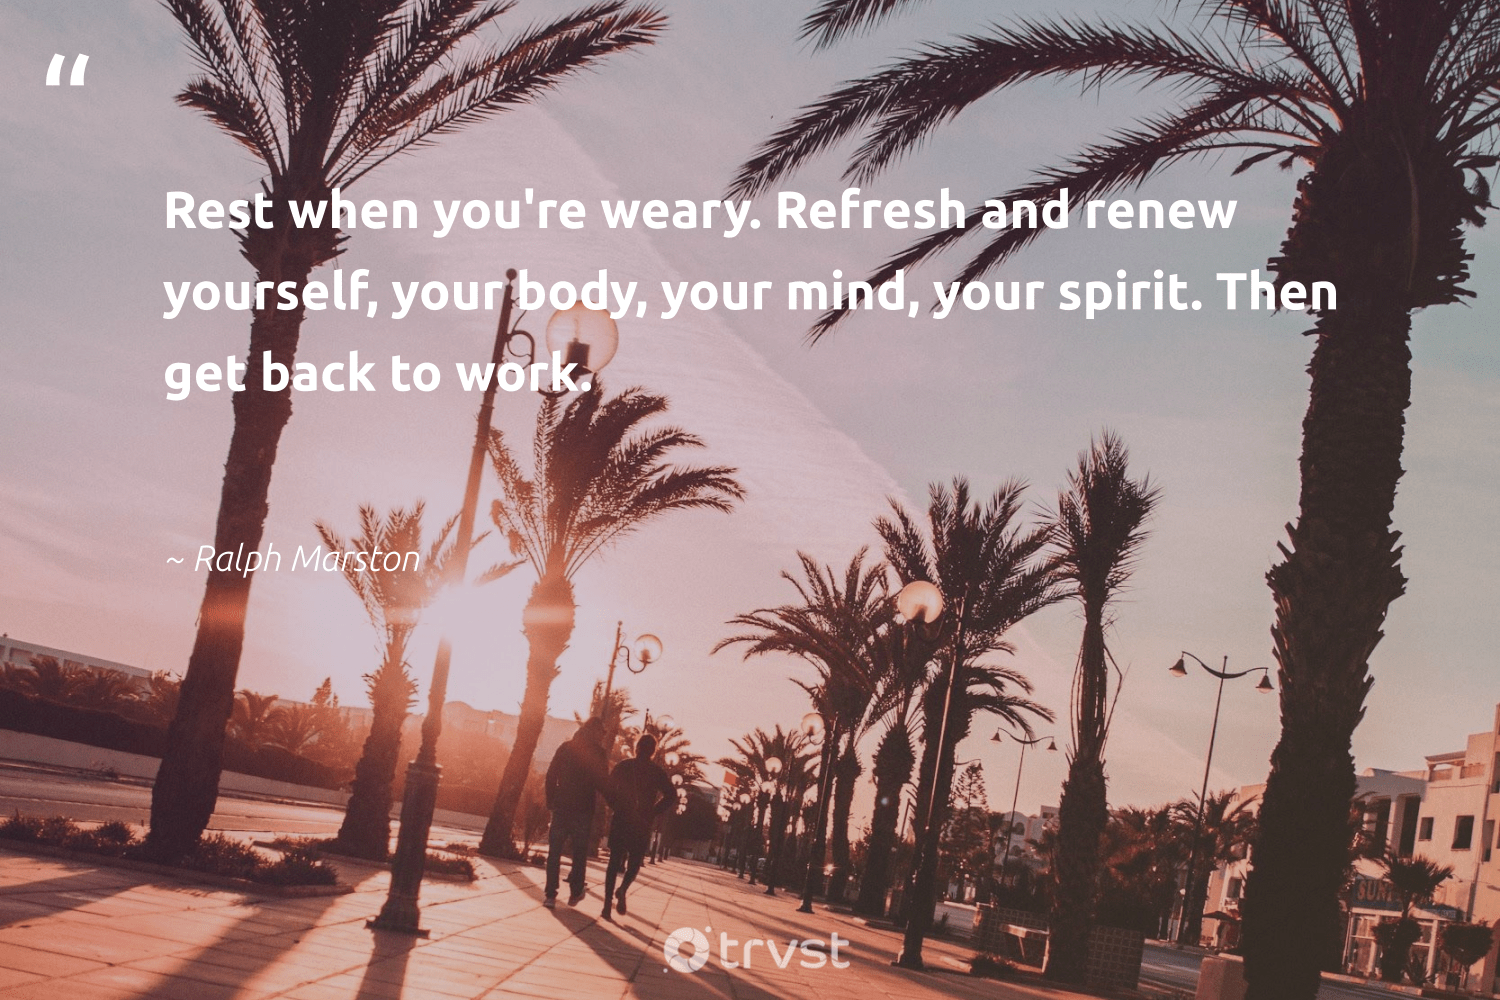 """Rest when you're weary. Refresh and renew yourself, your body, your mind, your spirit. Then get back to work.""  - Ralph Marston #trvst #quotes #health #dogood #nevergiveup #bethechange #mindset #socialimpact #changemakers #beinspired #togetherwecan #impact"